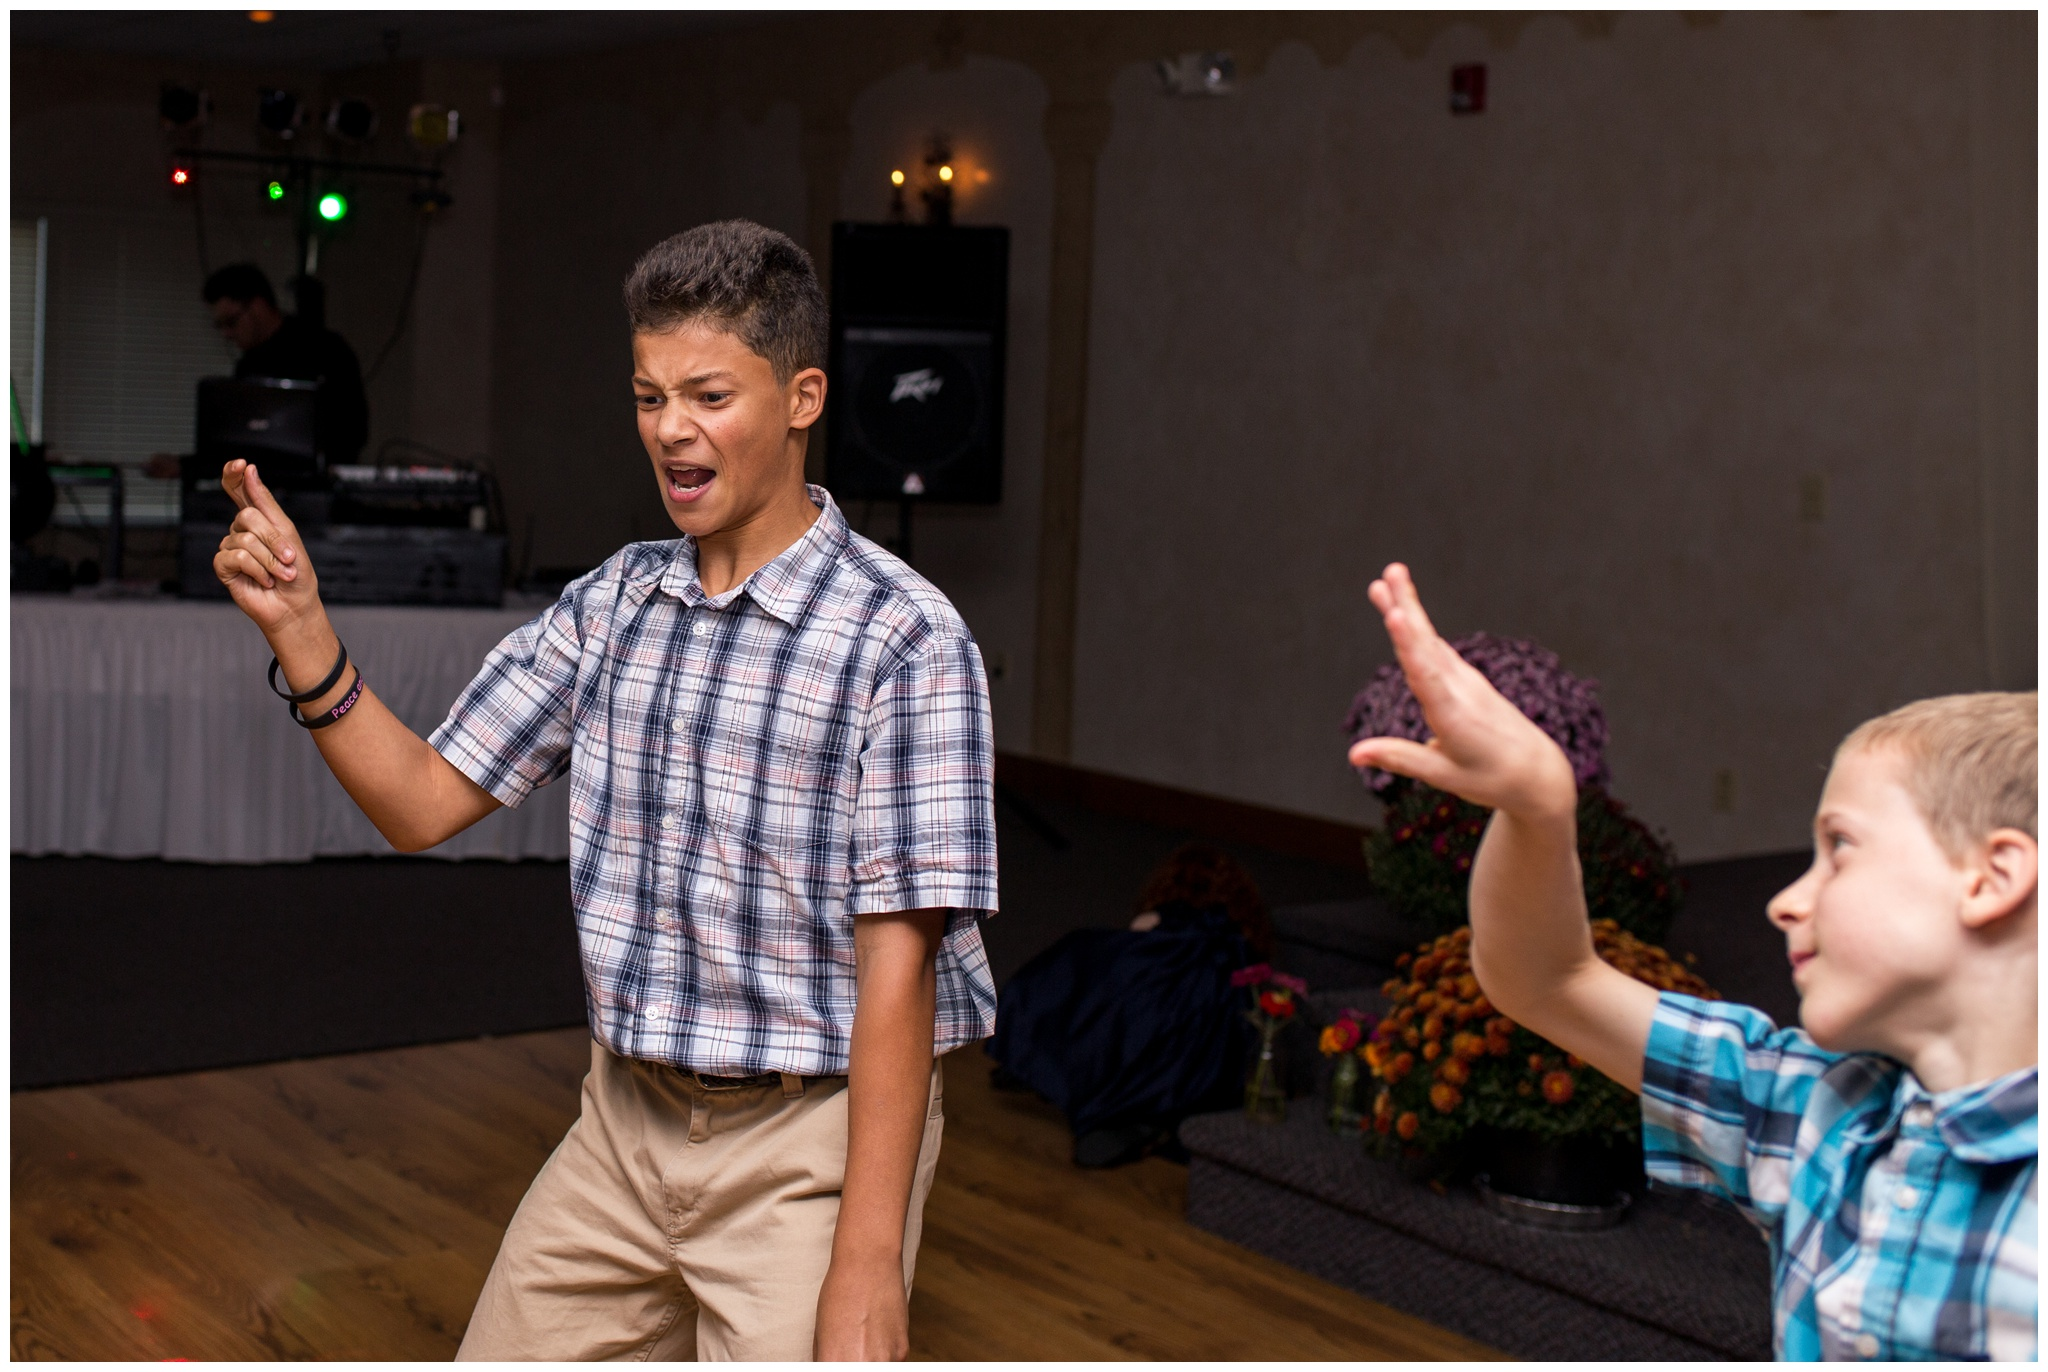 kids dancing during wedding reception at Romer's Catering in Greenville Ohio